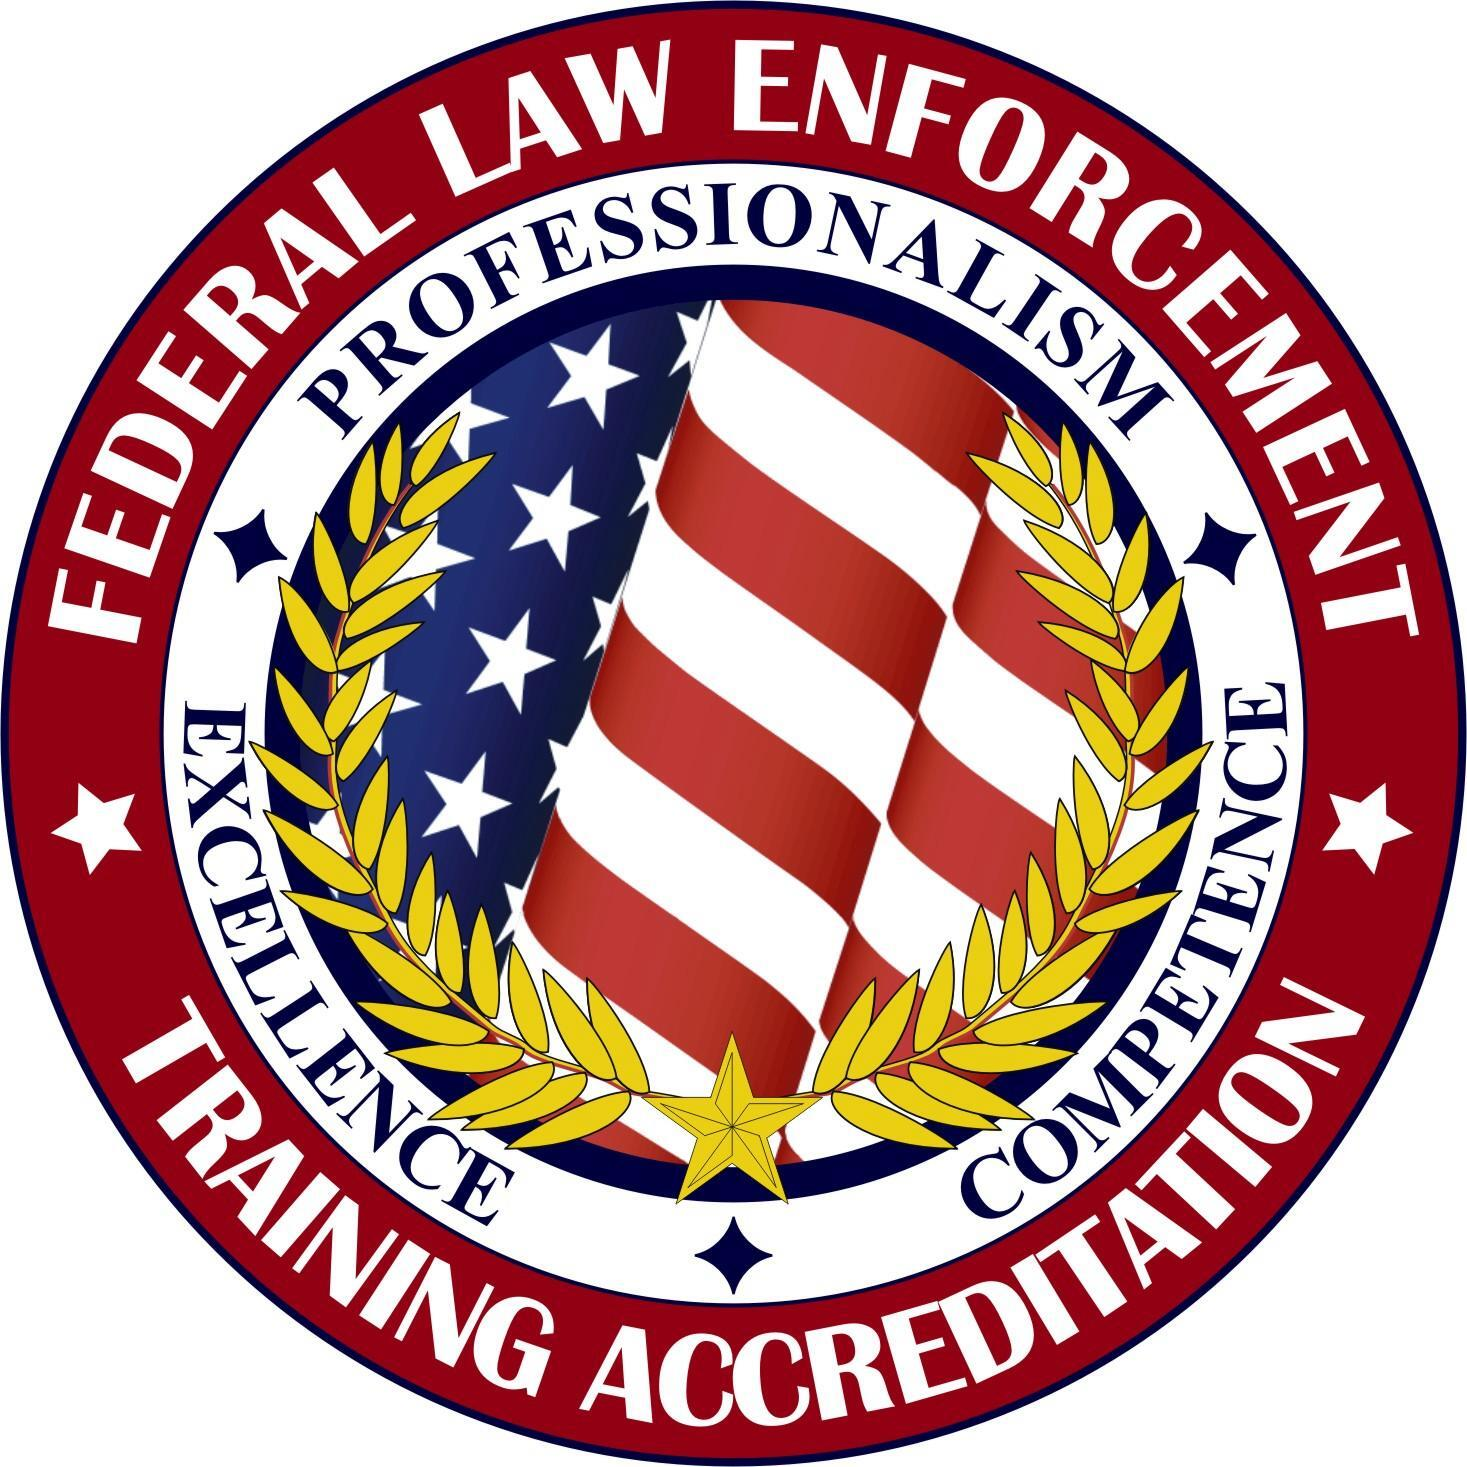 Federal Law Enforcement Training Accreditation Seal - Professionalism, Excellence, Competence